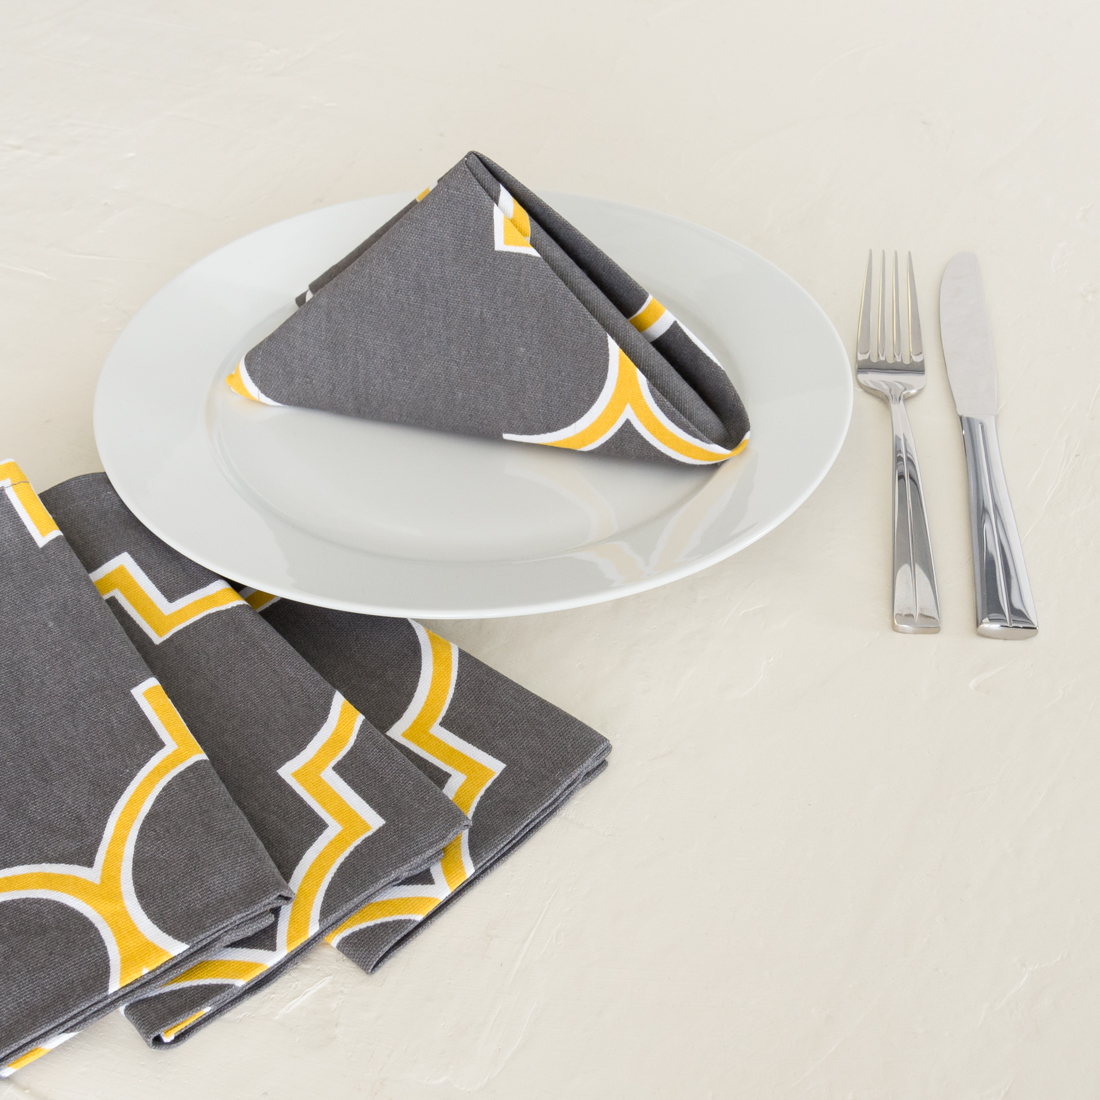 16 in. Charcoal & Mustard Yellow Trellis Cotton Napkins 4 pack by